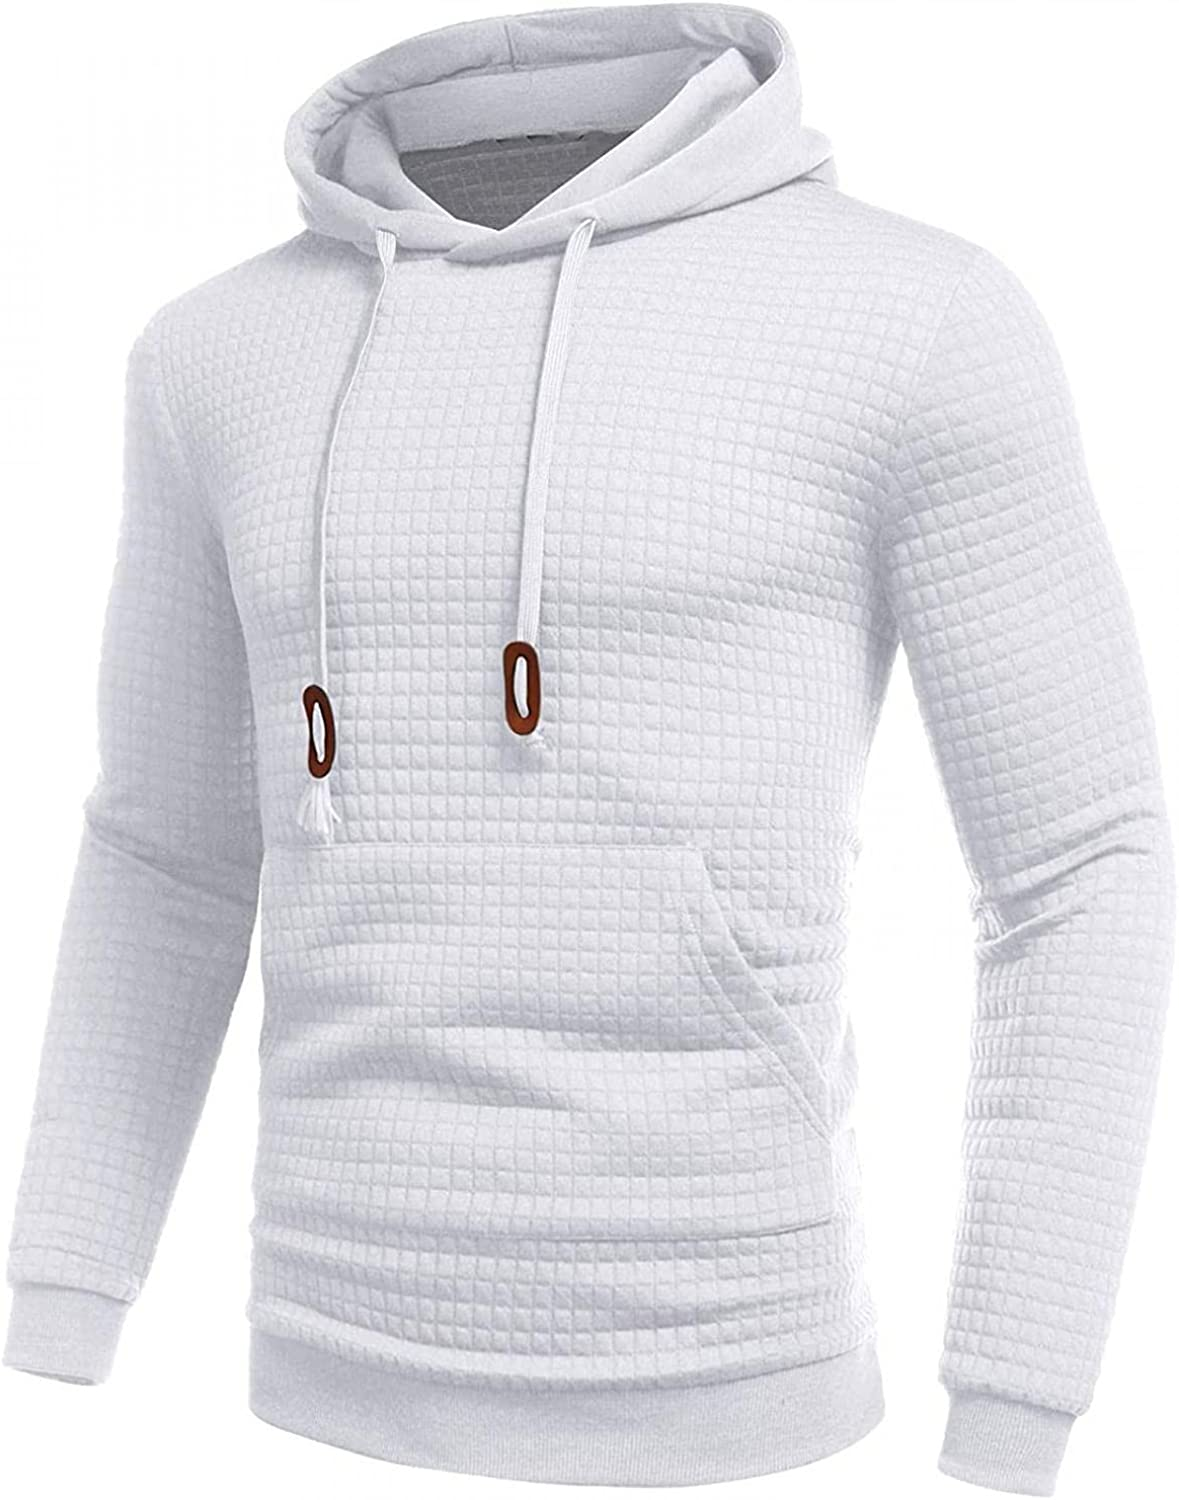 Aayomet Pullover Hoodies for Men Plaid Solid Long Sleeve Hooded Sweatshirts Casual Workout Sport Sweaters Blouses Tops